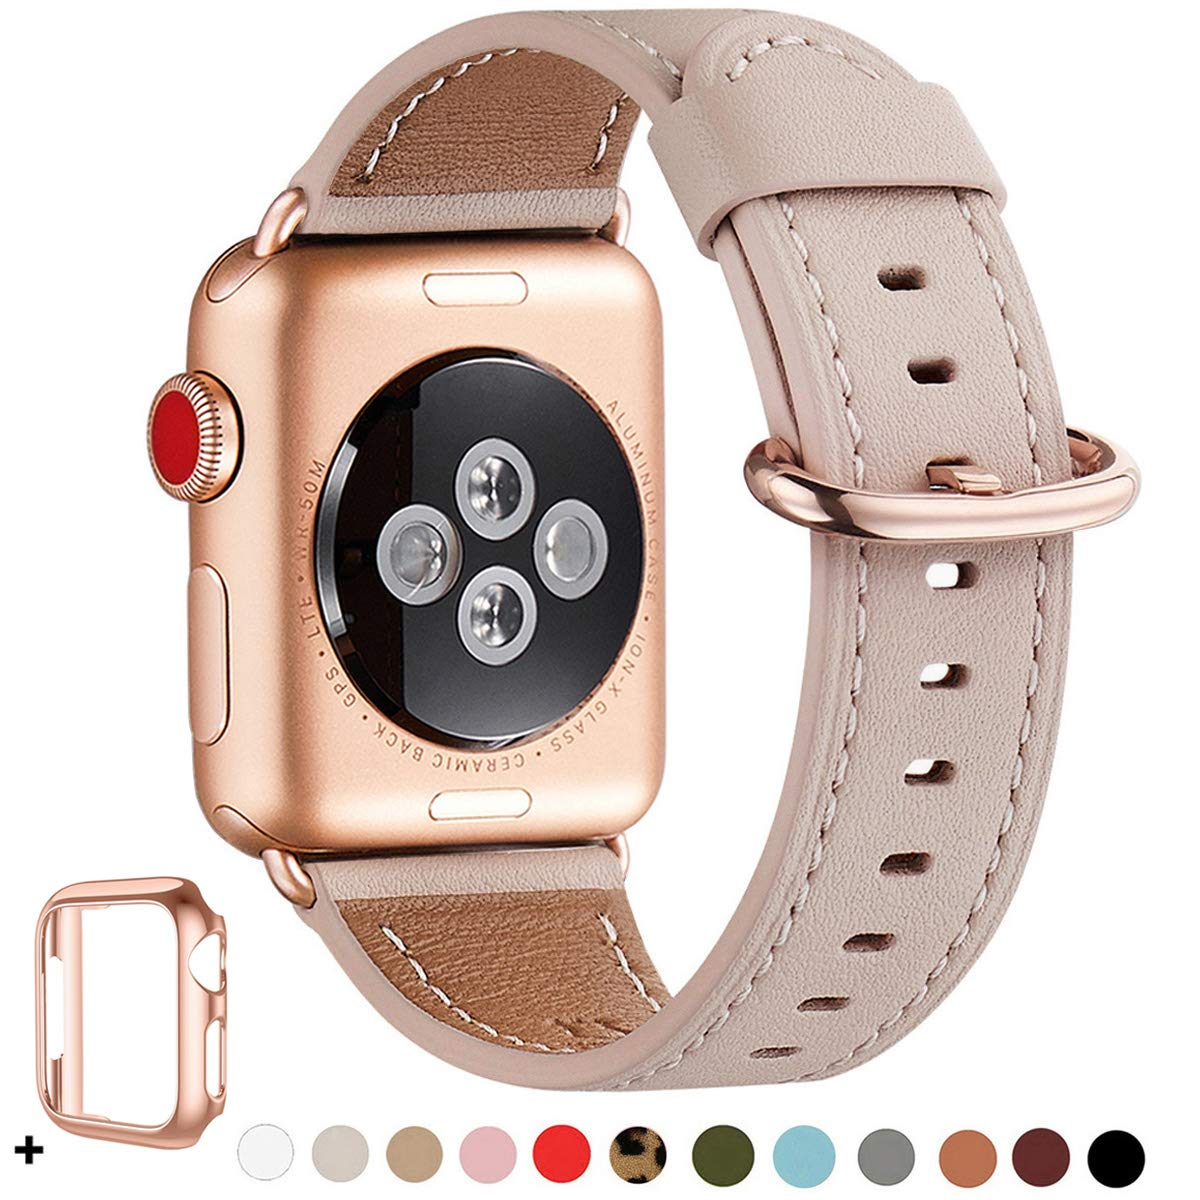 WFEAGL Compatible iWatch Band 40mm 38mm, Top Grain Leather Band with Gold Adapter(The Same as Series 4/3 with Gold Aluminum Case in Color) for iWatch Series 5/4/3/2/1(Pink Sand Band+Rosegold Adapter) by WFEAGL